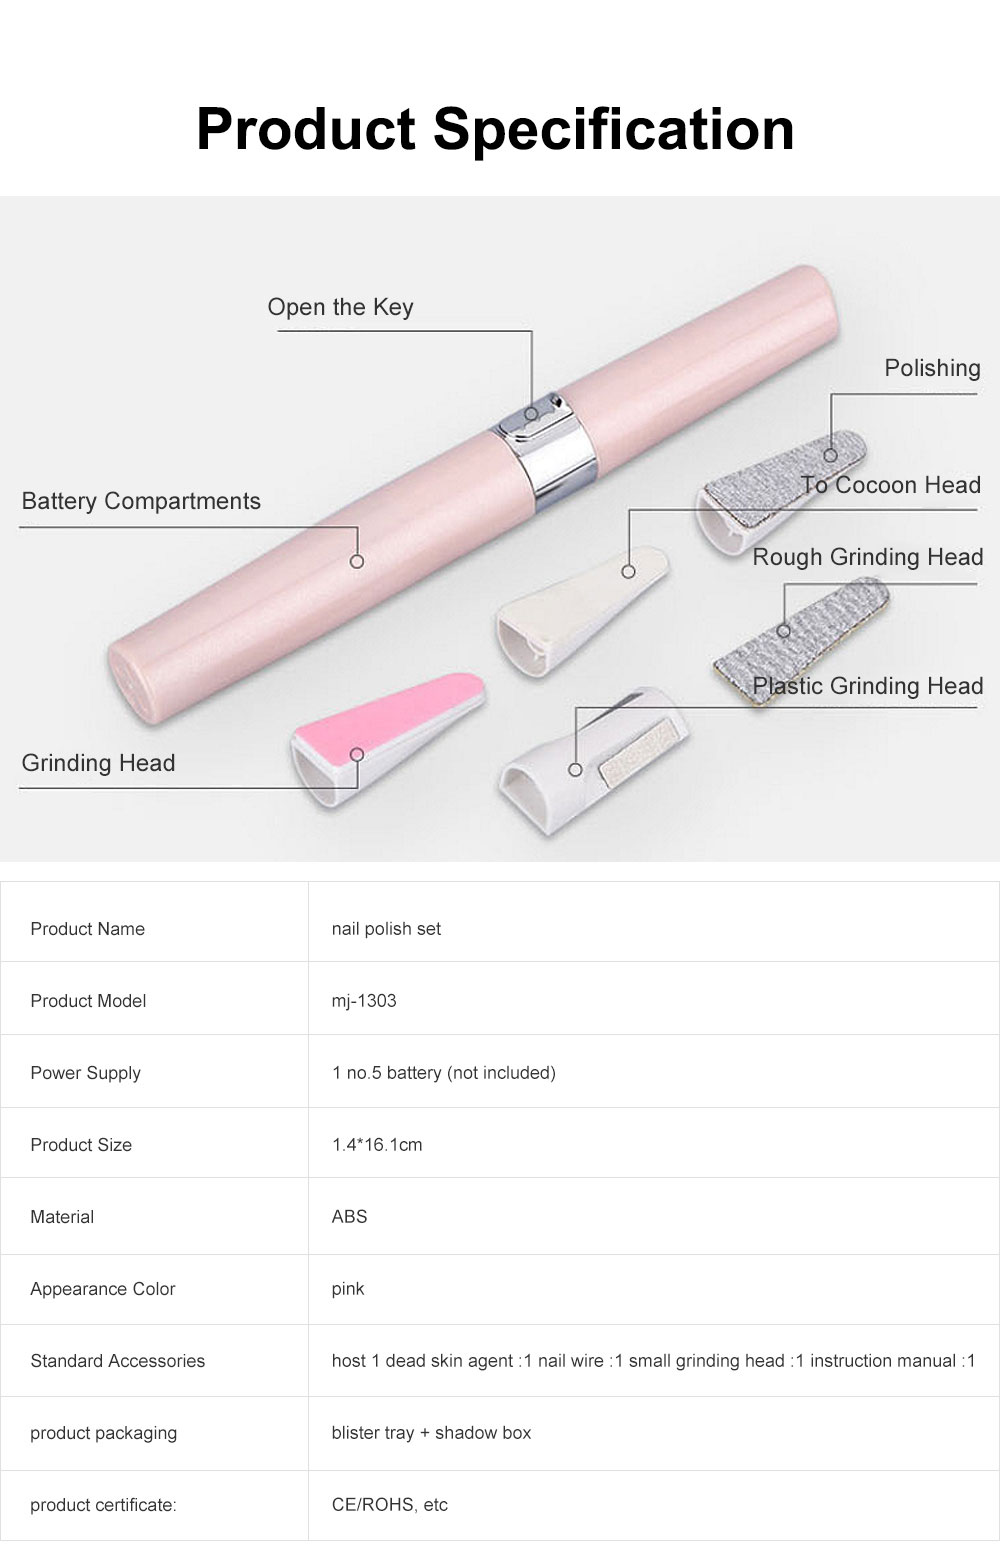 Small & Delicate Pen Type Multifunctional Nail Electric Manicure Set Used for Manicure Nails Polishing 6